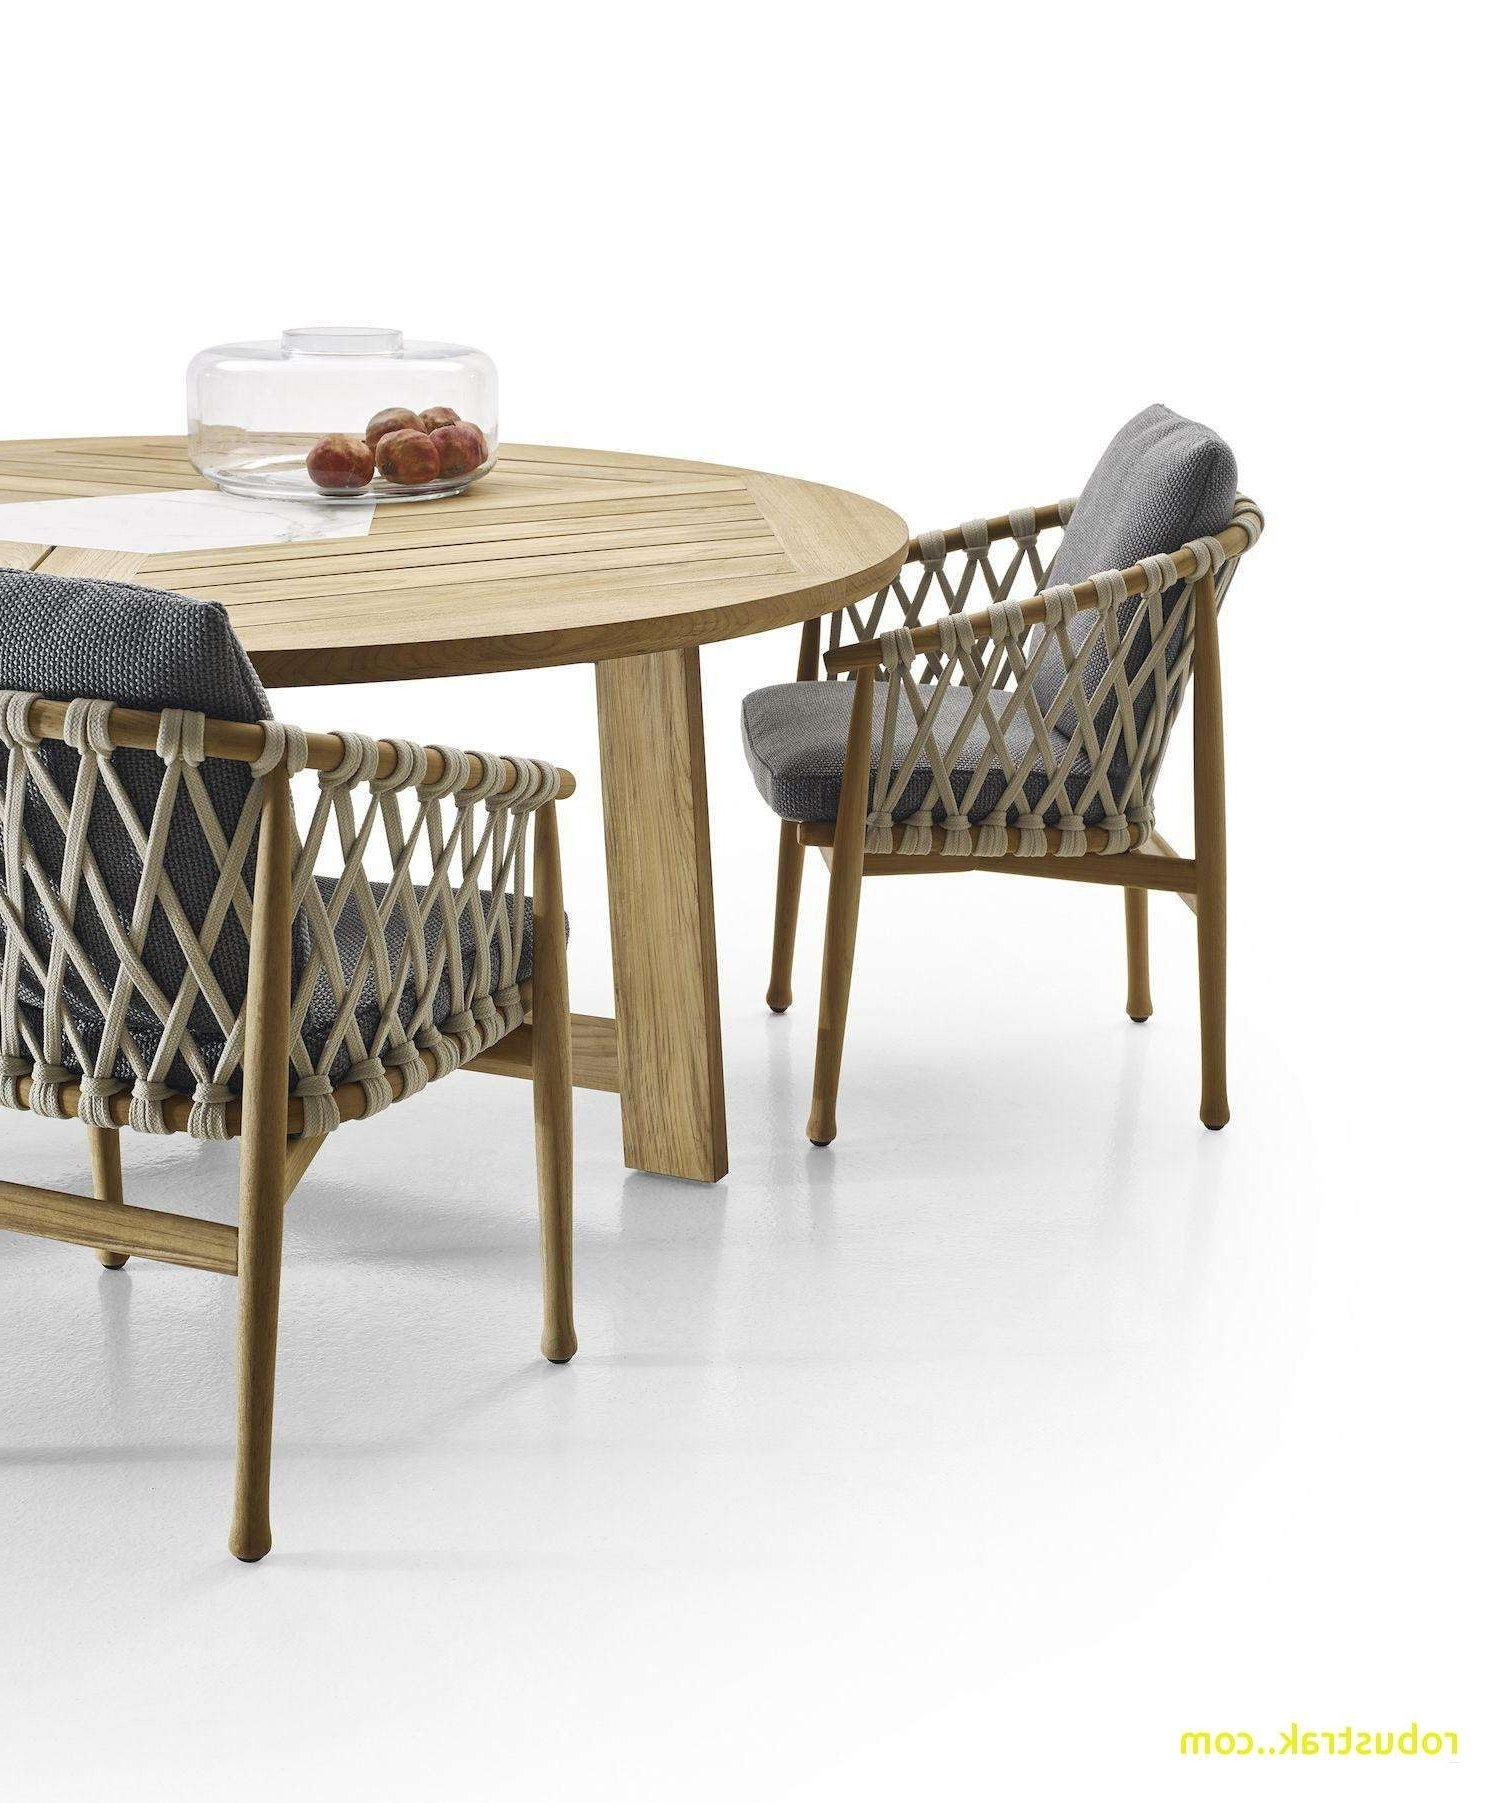 Well Known Caira 9 Piece Extension Dining Sets Pertaining To The 21 New Pedestals For Dining Tables – Welovedandelion (View 24 of 25)